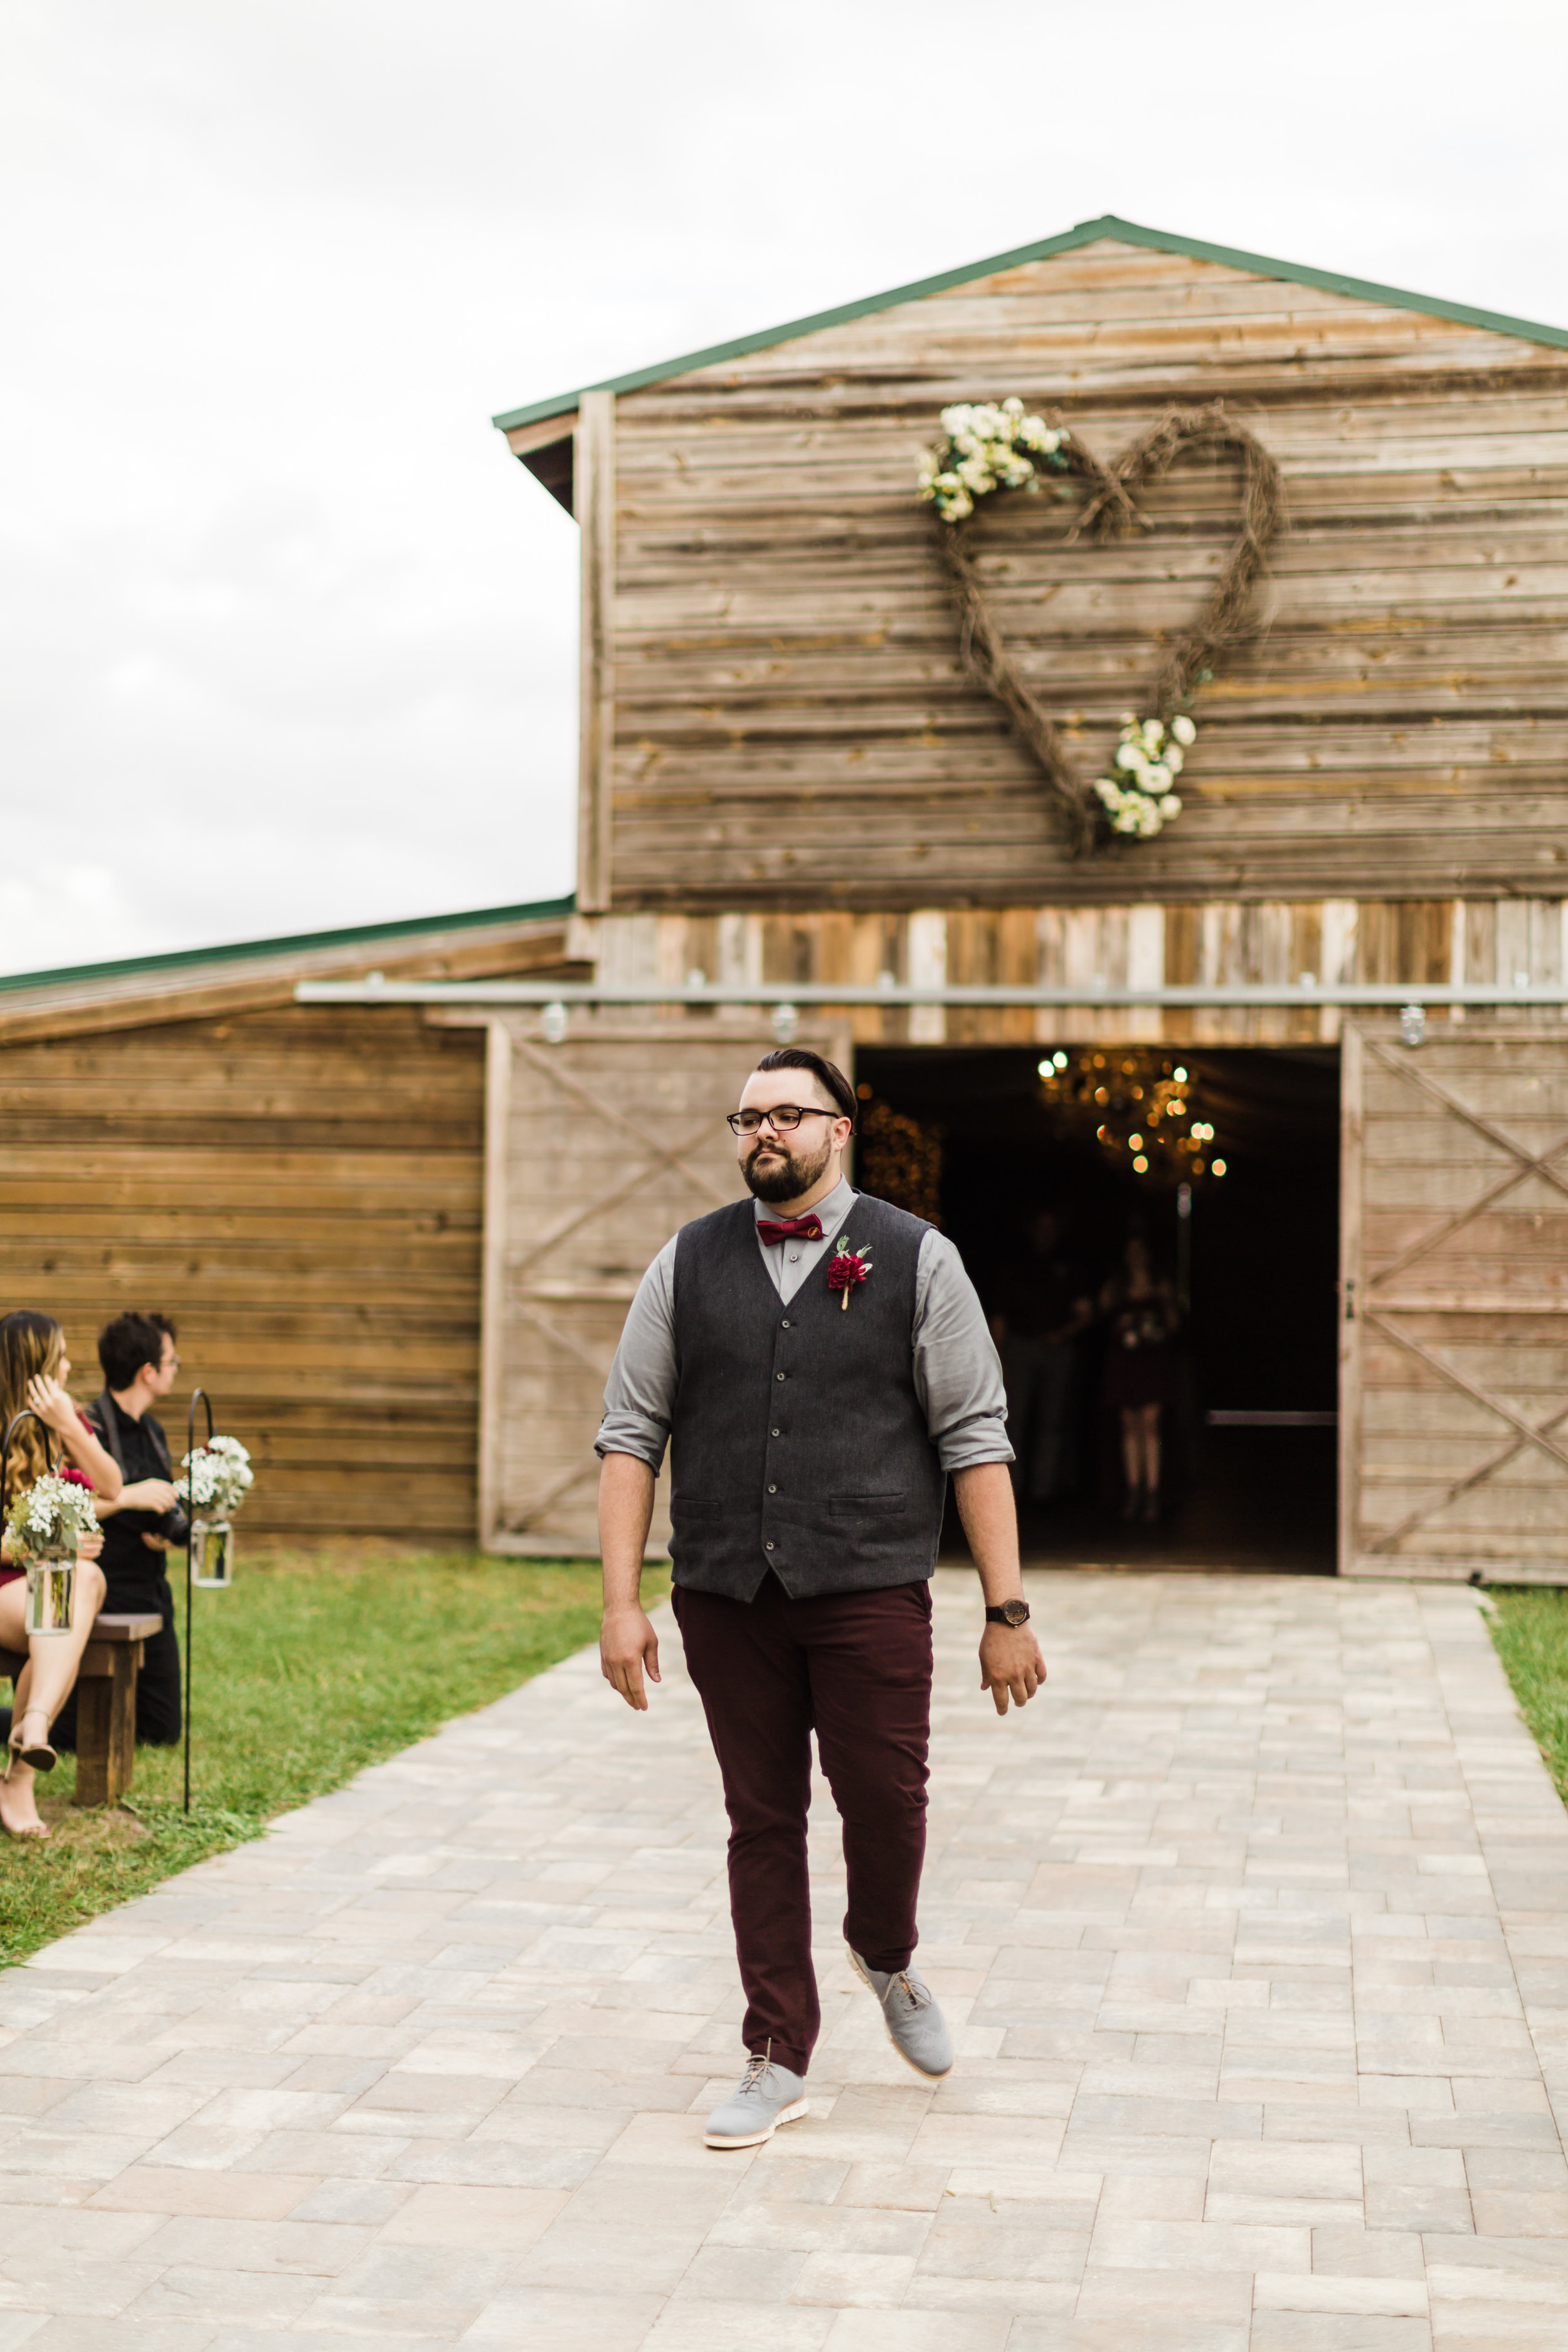 2018.11.11 Paige and TJ Enchanting Barn Wedding (151 of 841).jpg